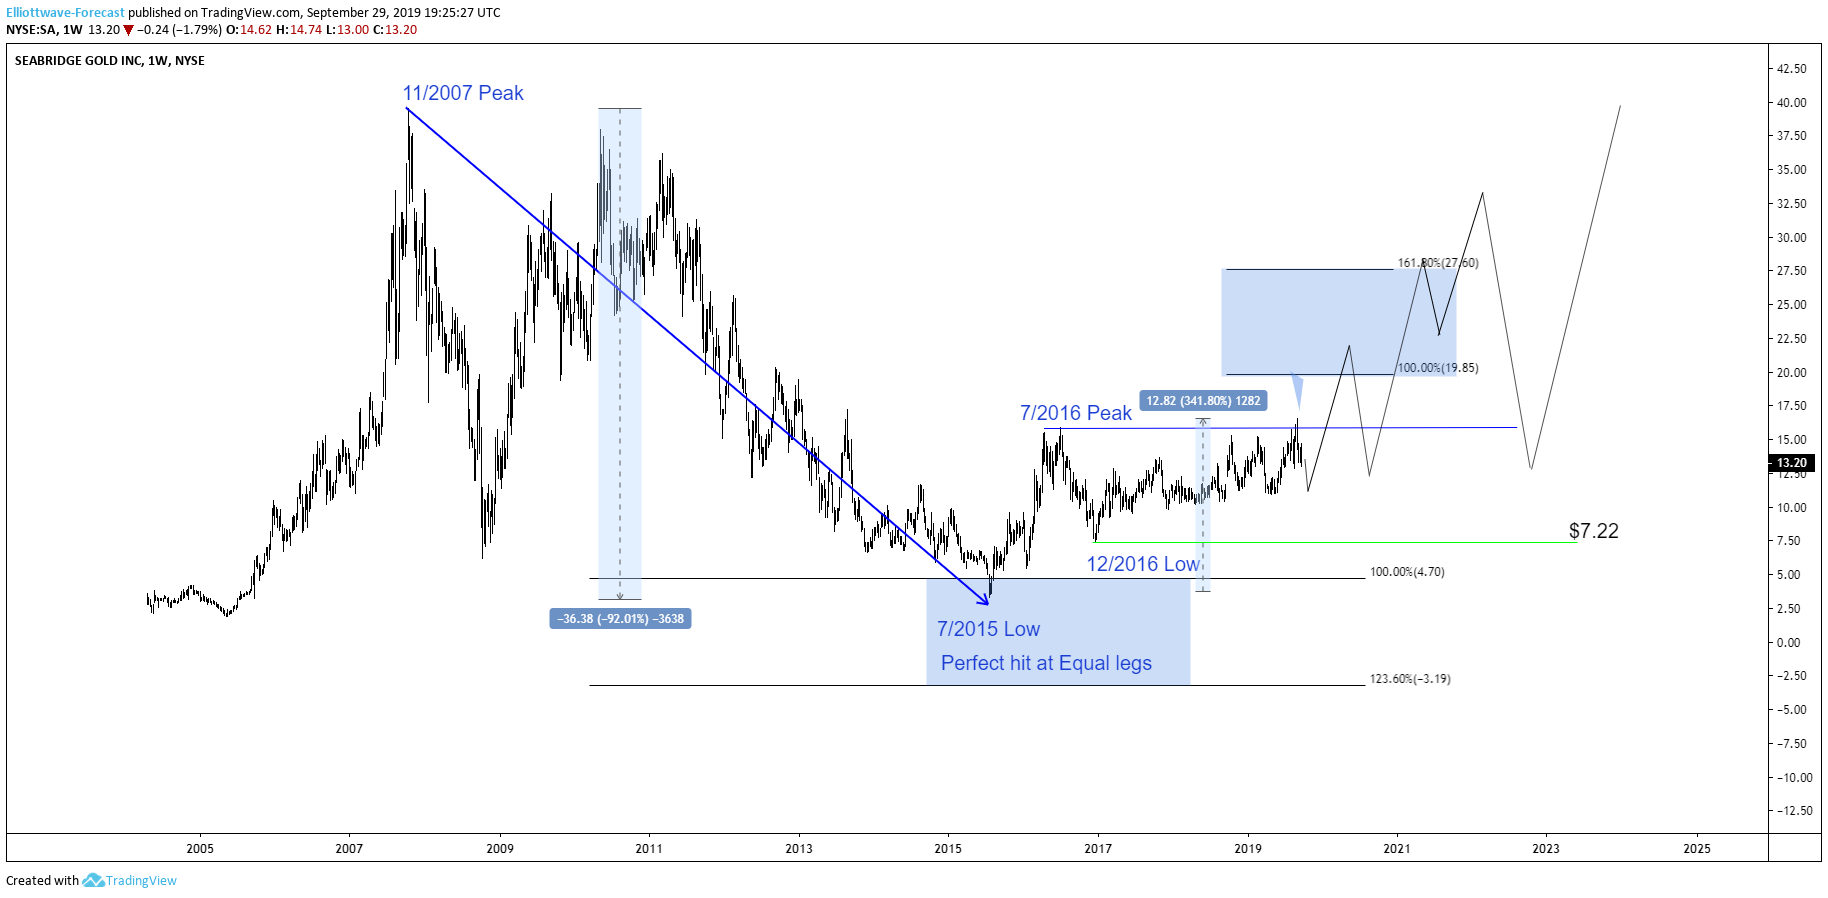 Seabridge Gold Analysis: Stock Should Remain Supported